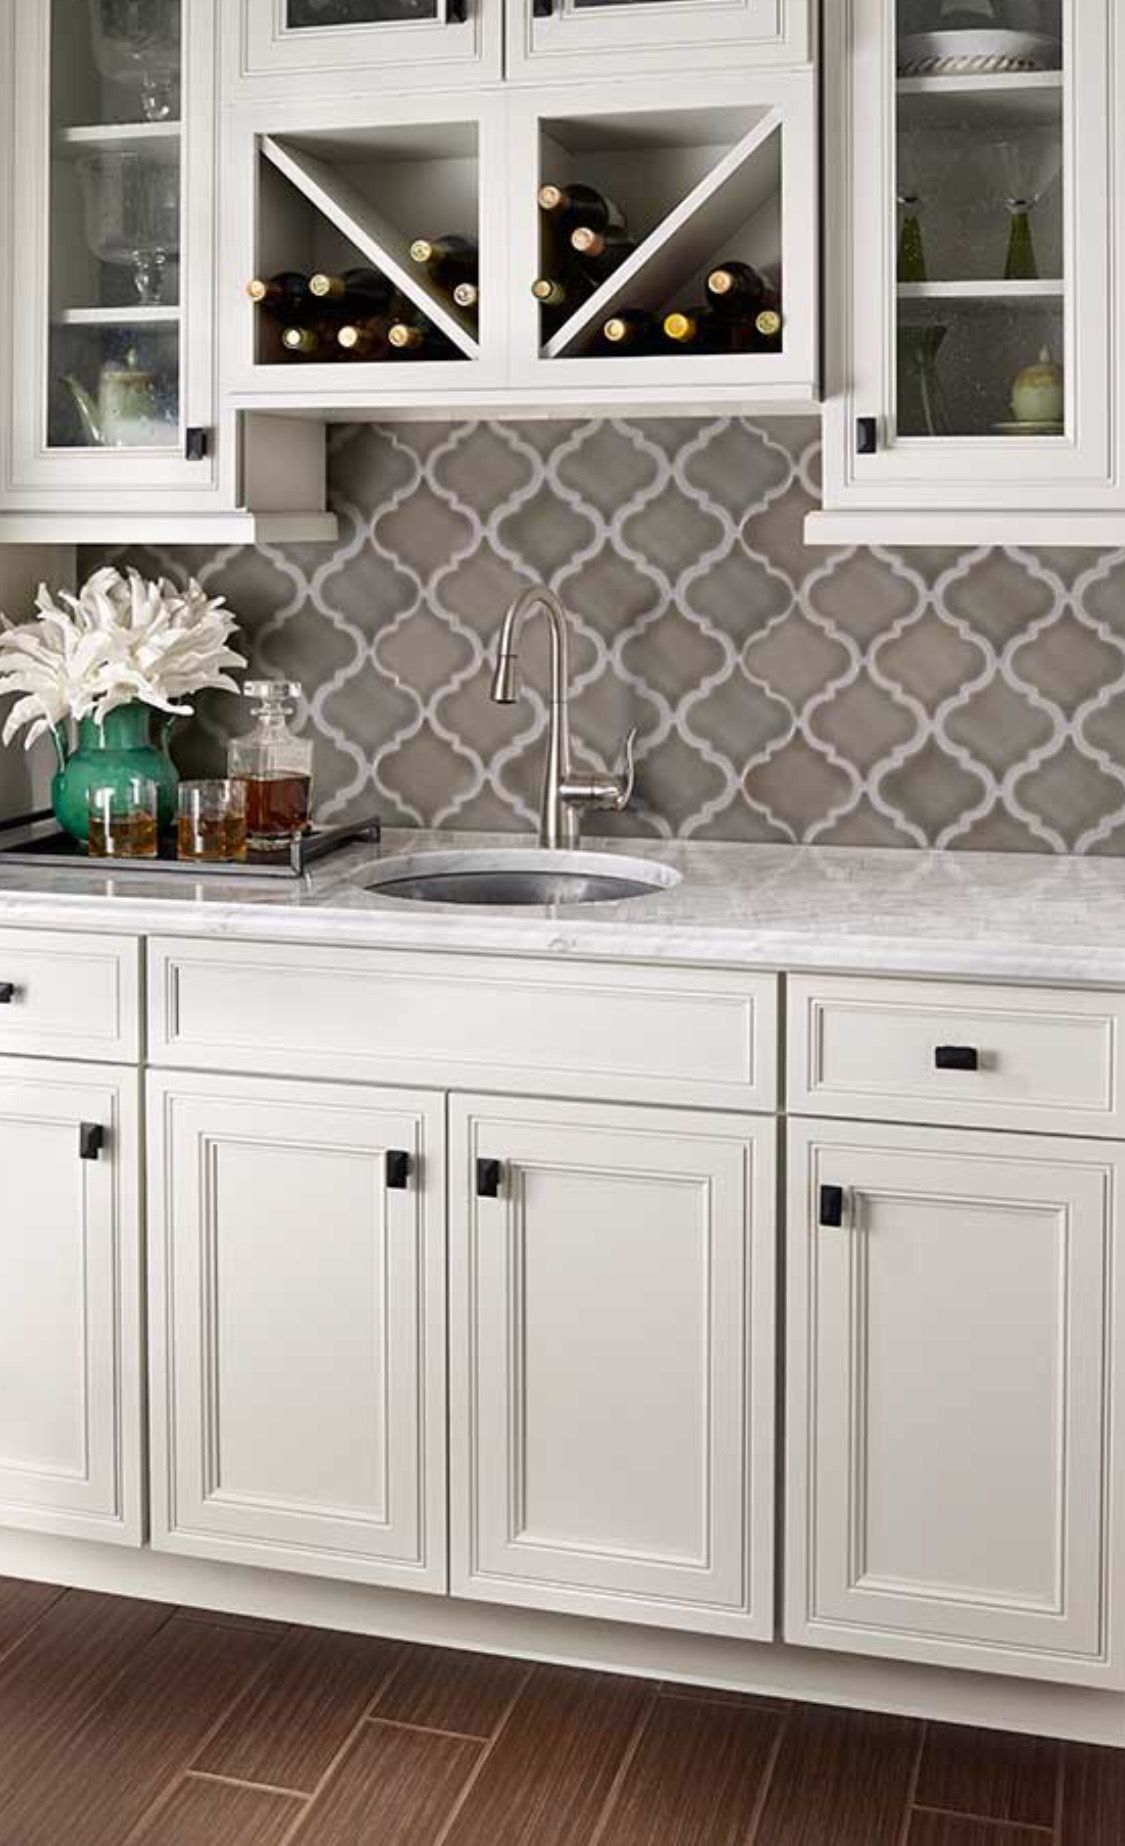 Arabesque Pattern With Crackle Finish Color Dove Grey Home Kitchens Kitchen Remodel New Kitchen